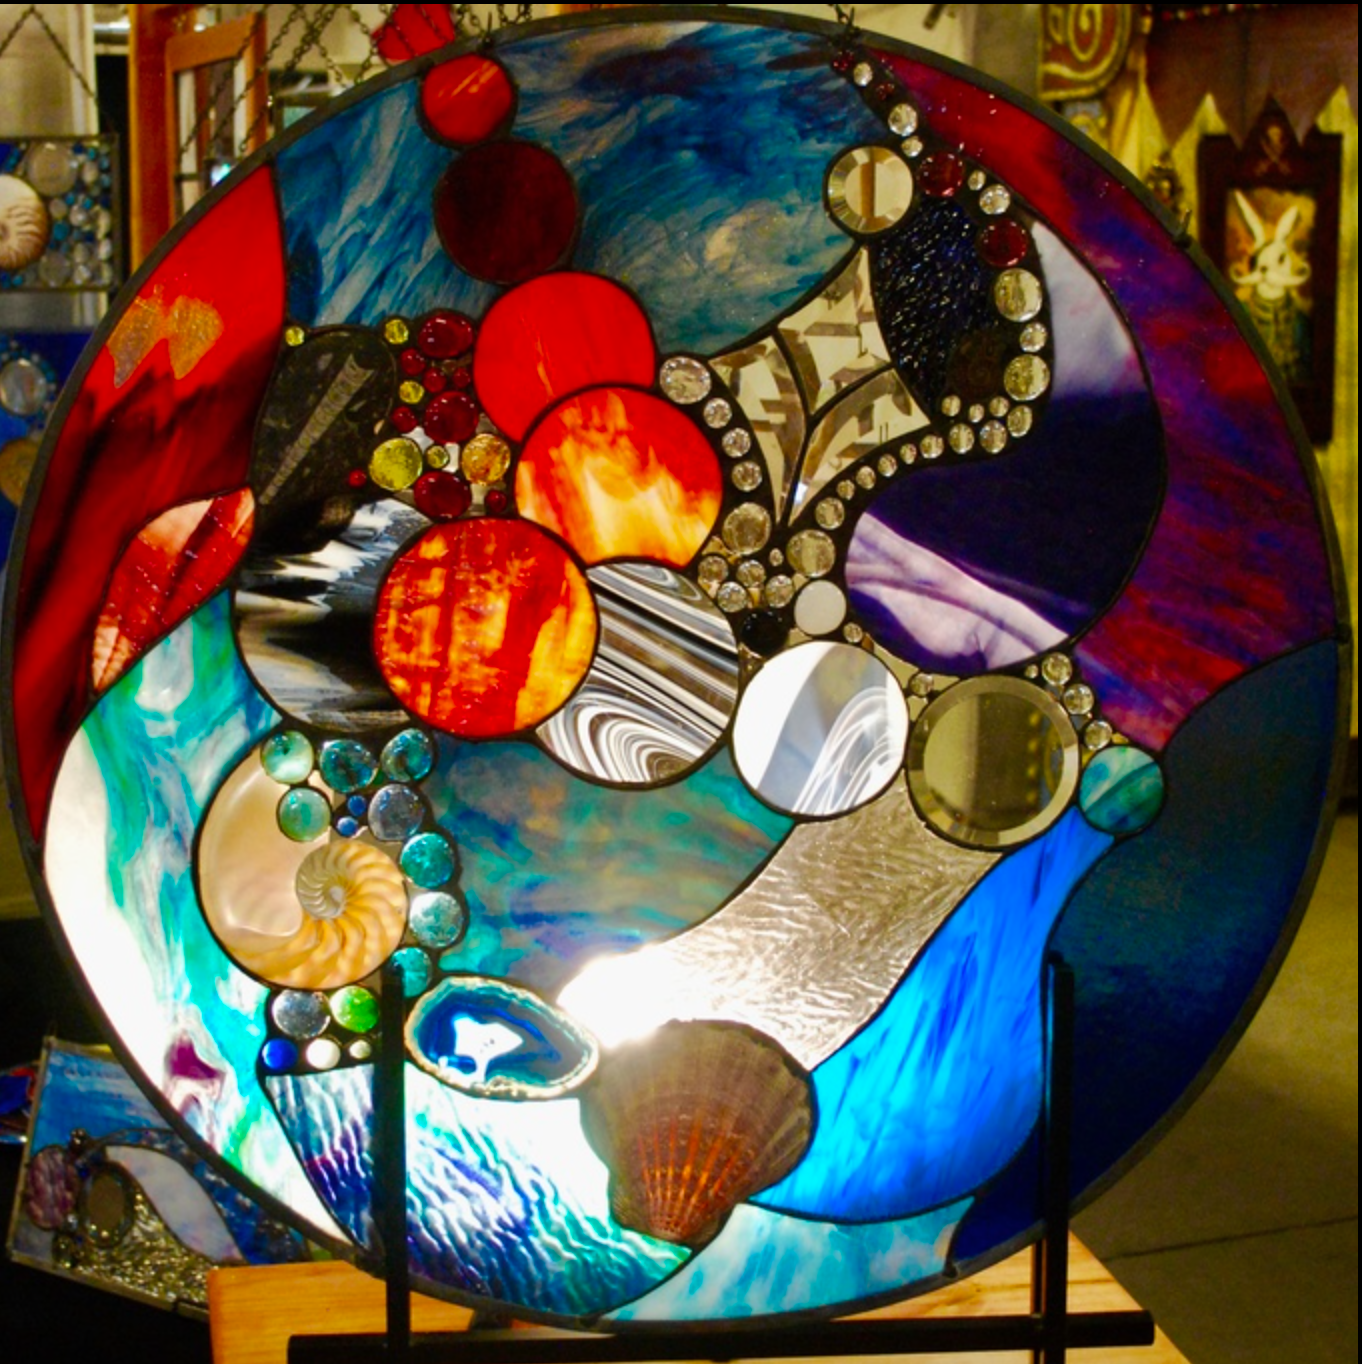 Steve Knox - http://www.daseindesigns.comStained Glass windows ranging in size and shape from 14